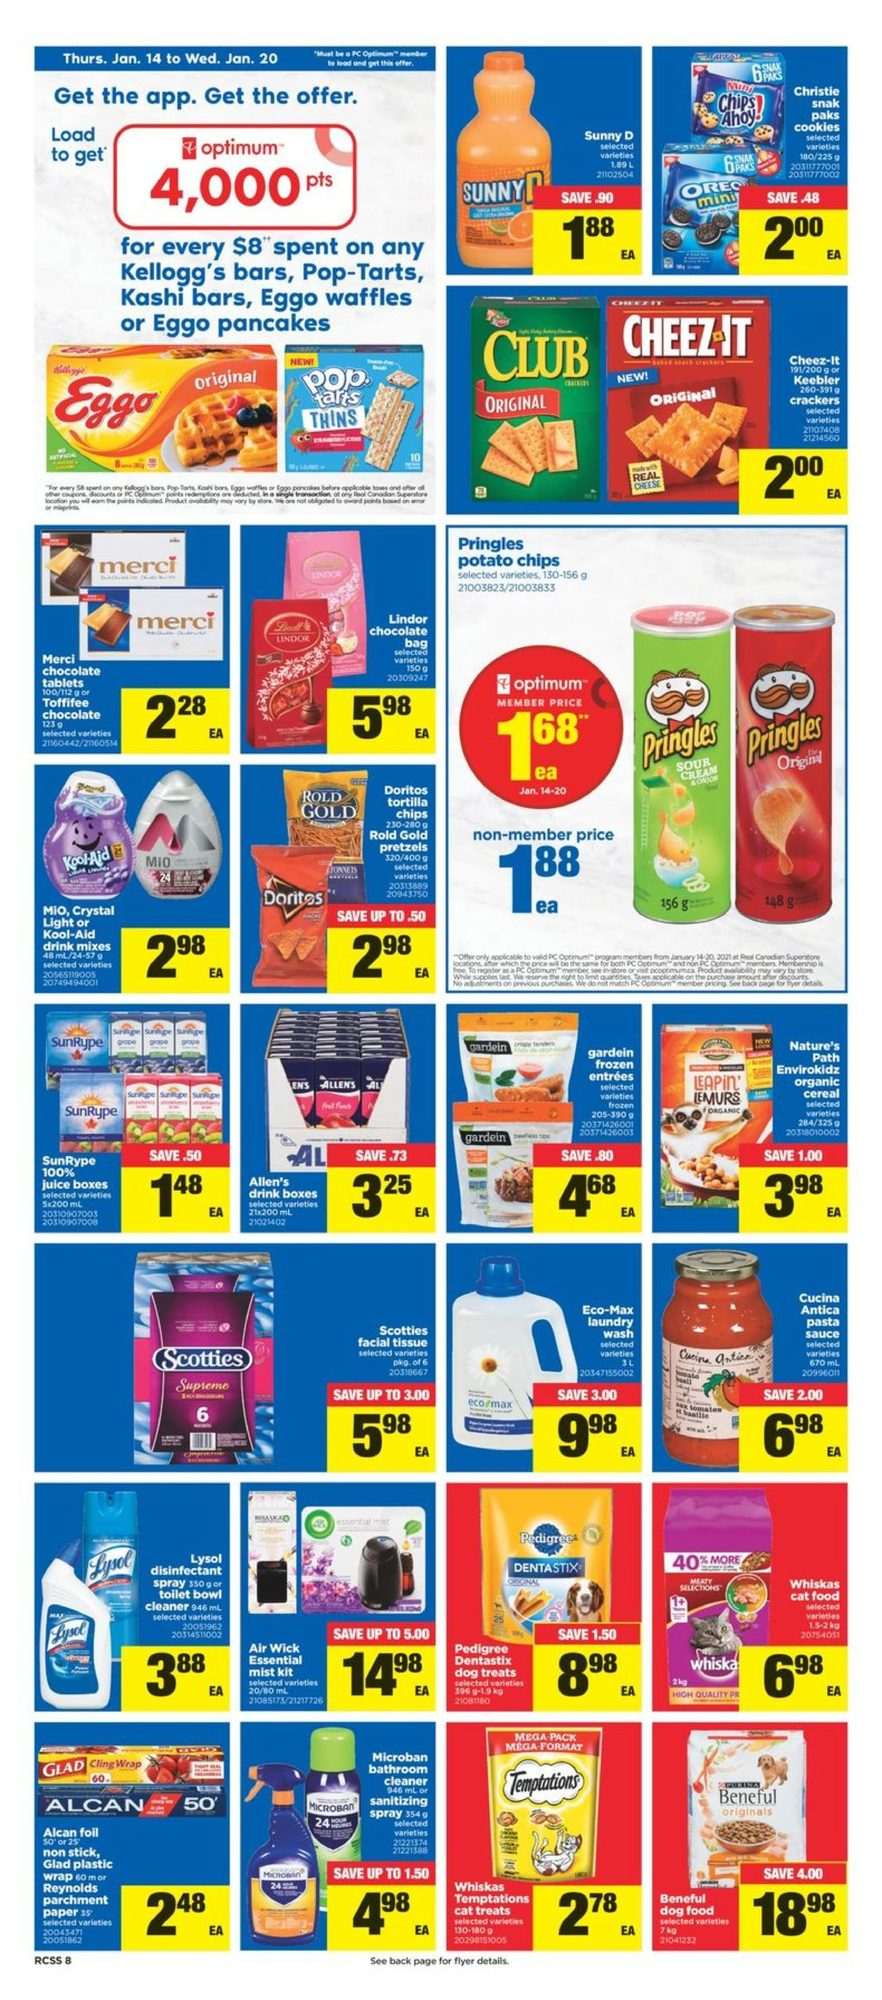 Real Canadian Superstore - Weekly Flyer Specials - Page 8